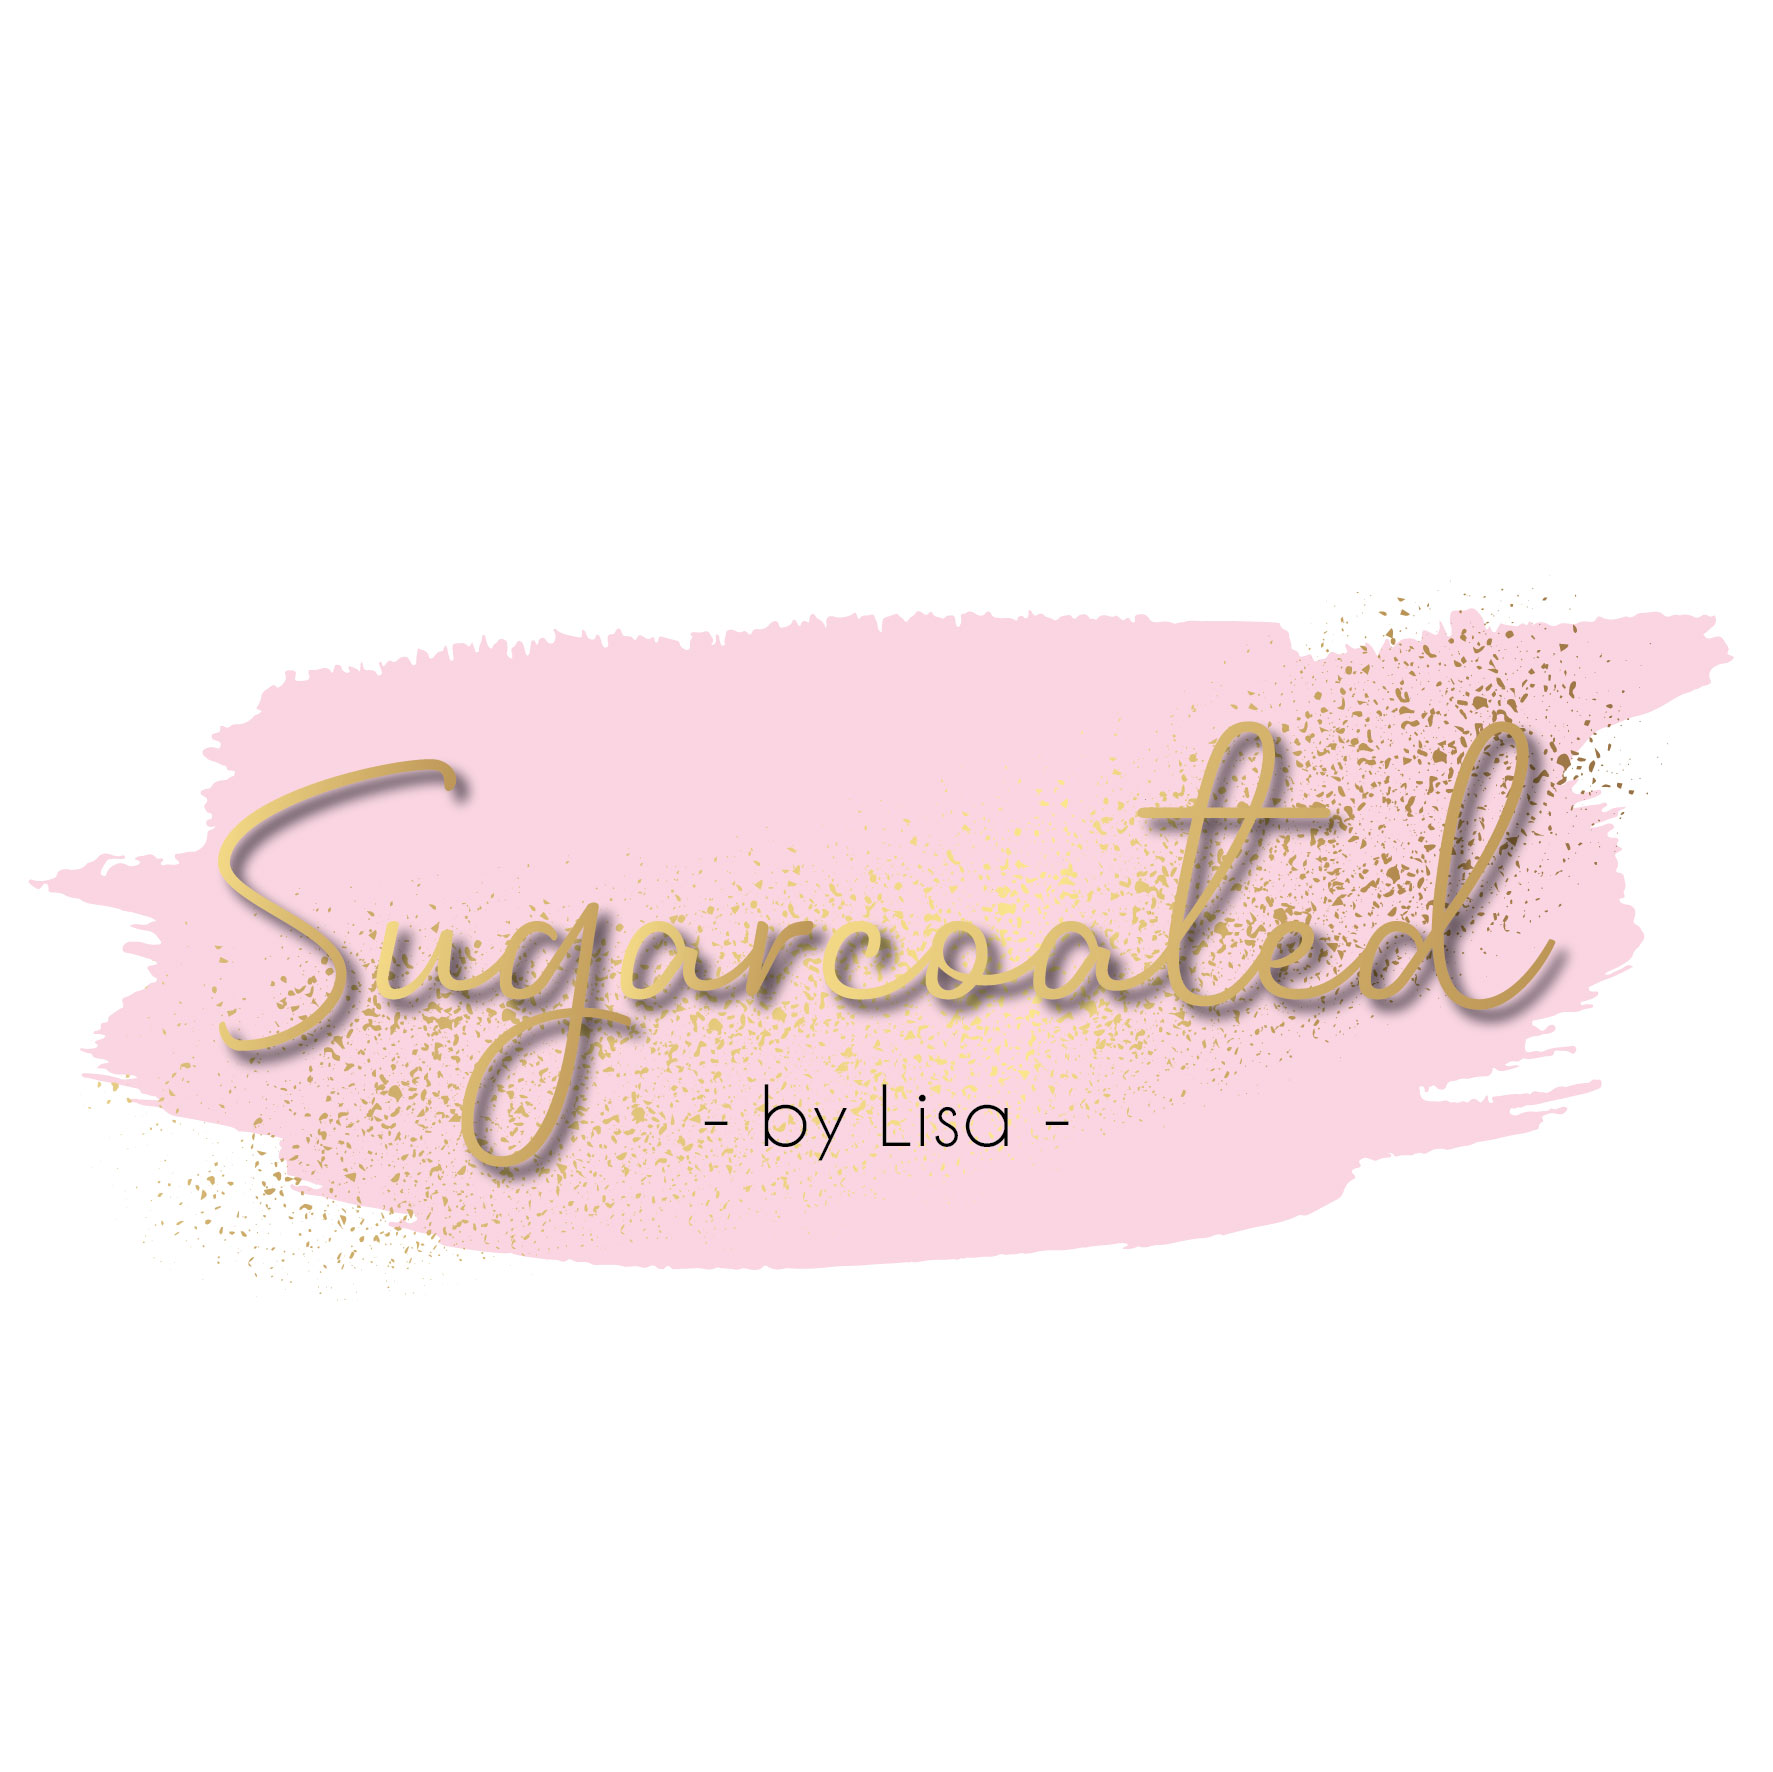 Sugarcoated by Lisa